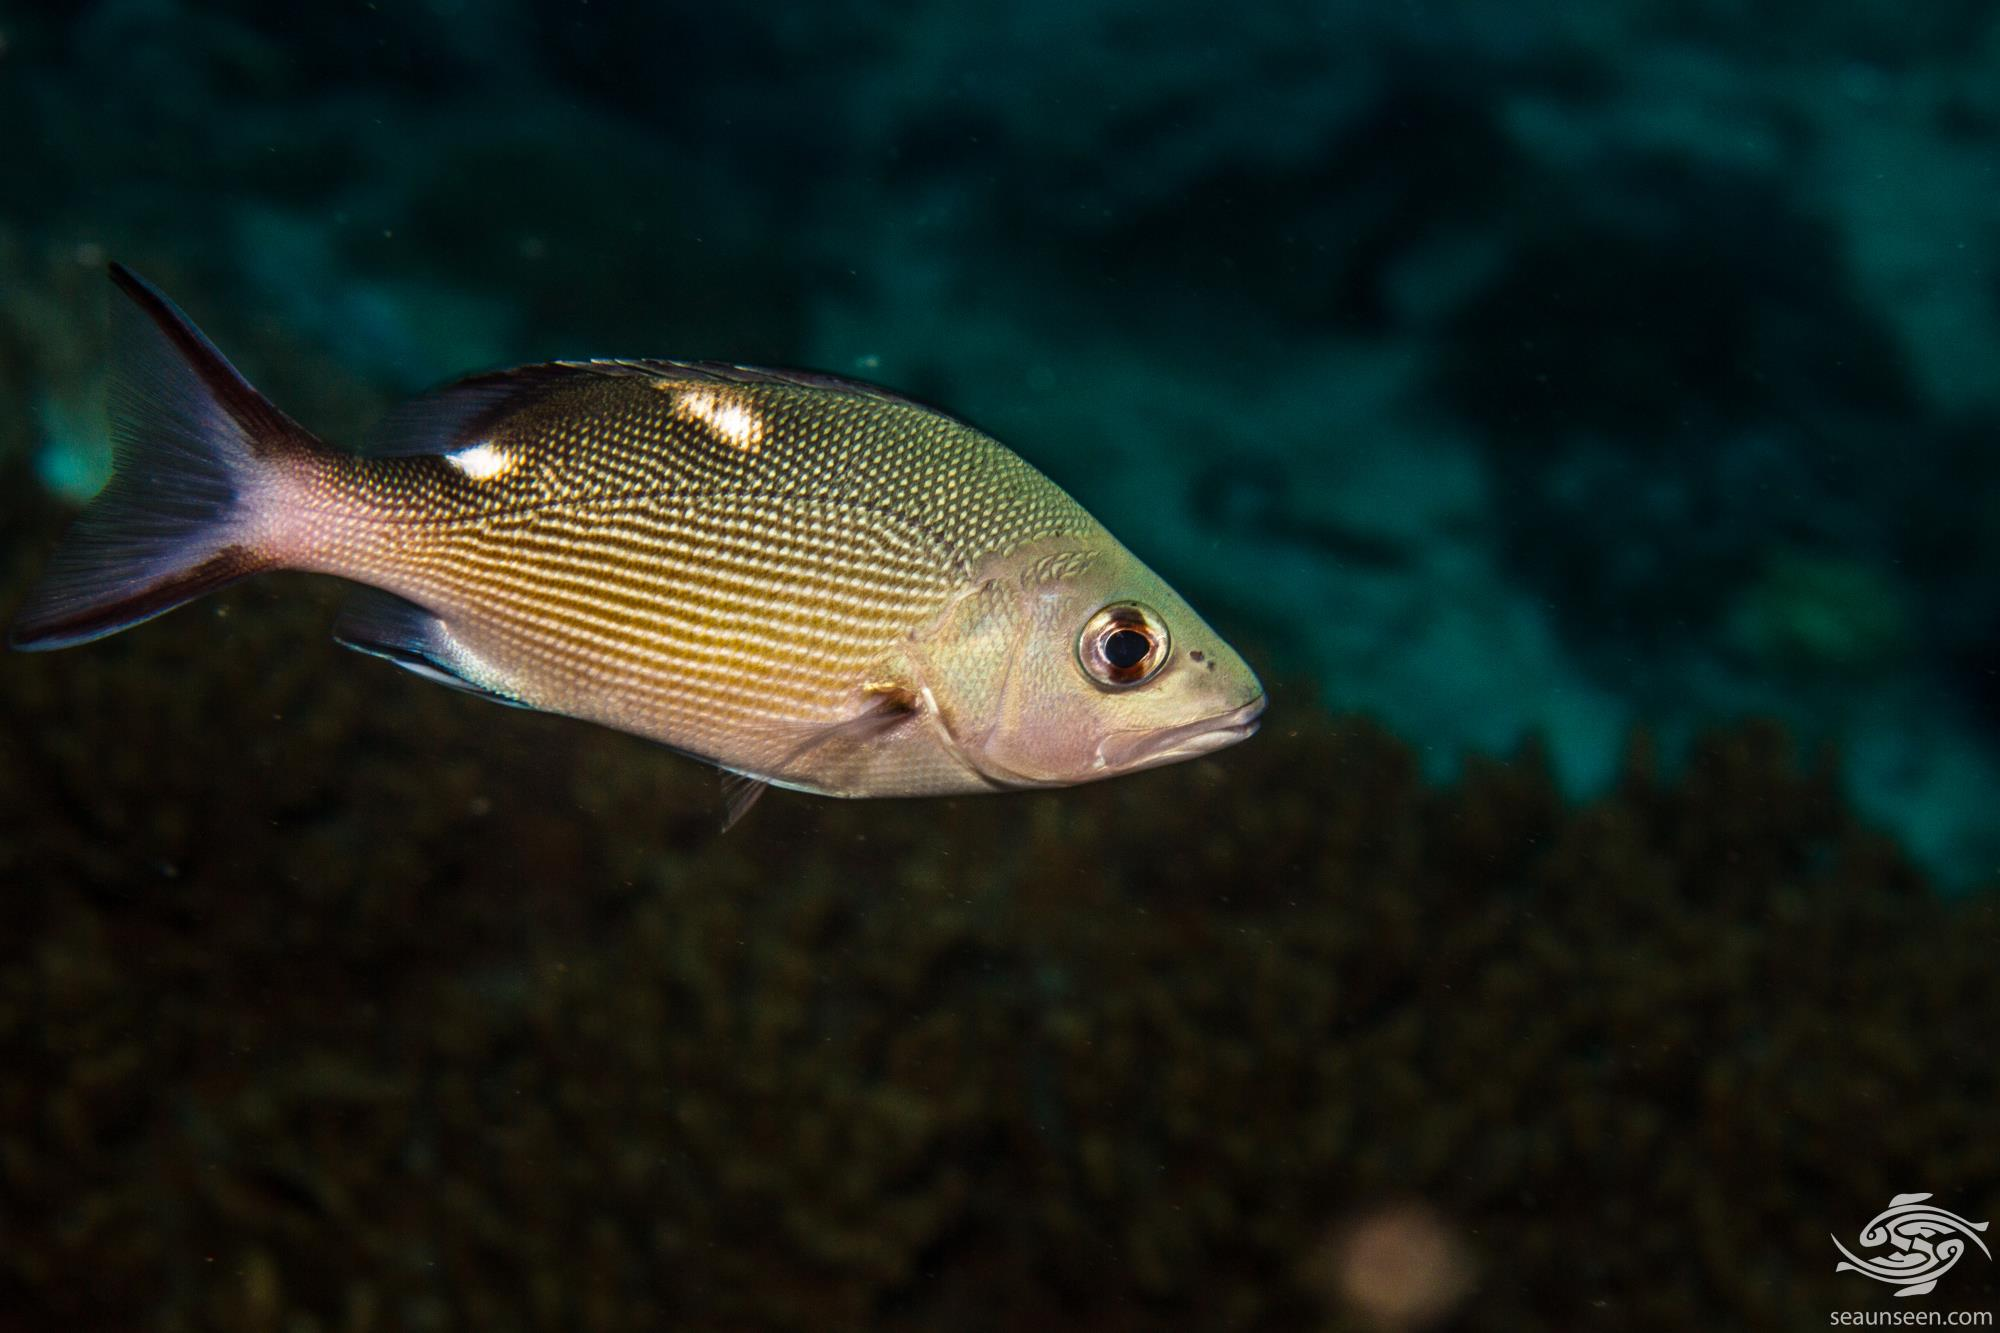 Two-spot Red snapper (Lutjanus bohar) is also known as the Twinspot Snapper and the Bohar Snapper